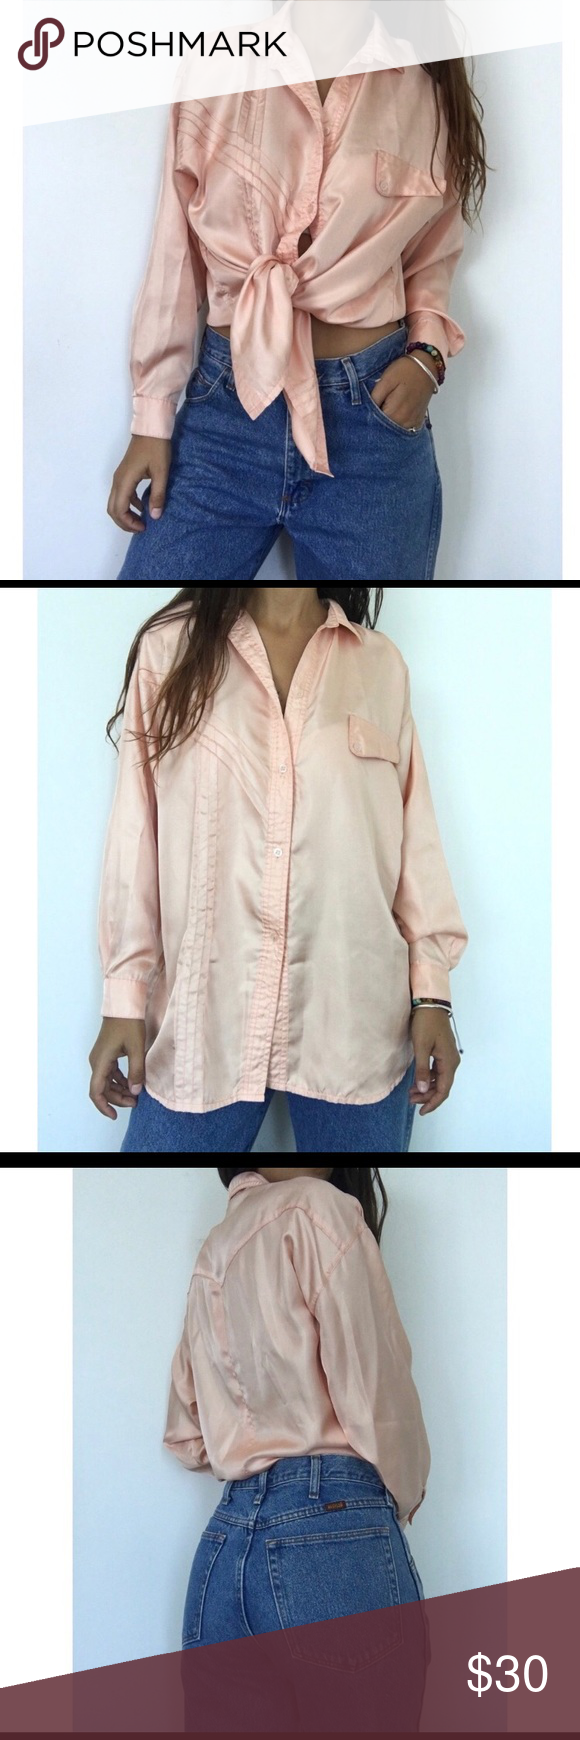 ba74d2eaa7ecd •VINTAGE BLUSH SATIN SILK BLOUSE• Adorable blush powder pink vintage blouse  by Hamvre fashion. Has a satin silk look to it. Chic and could be tied in a  knot ...